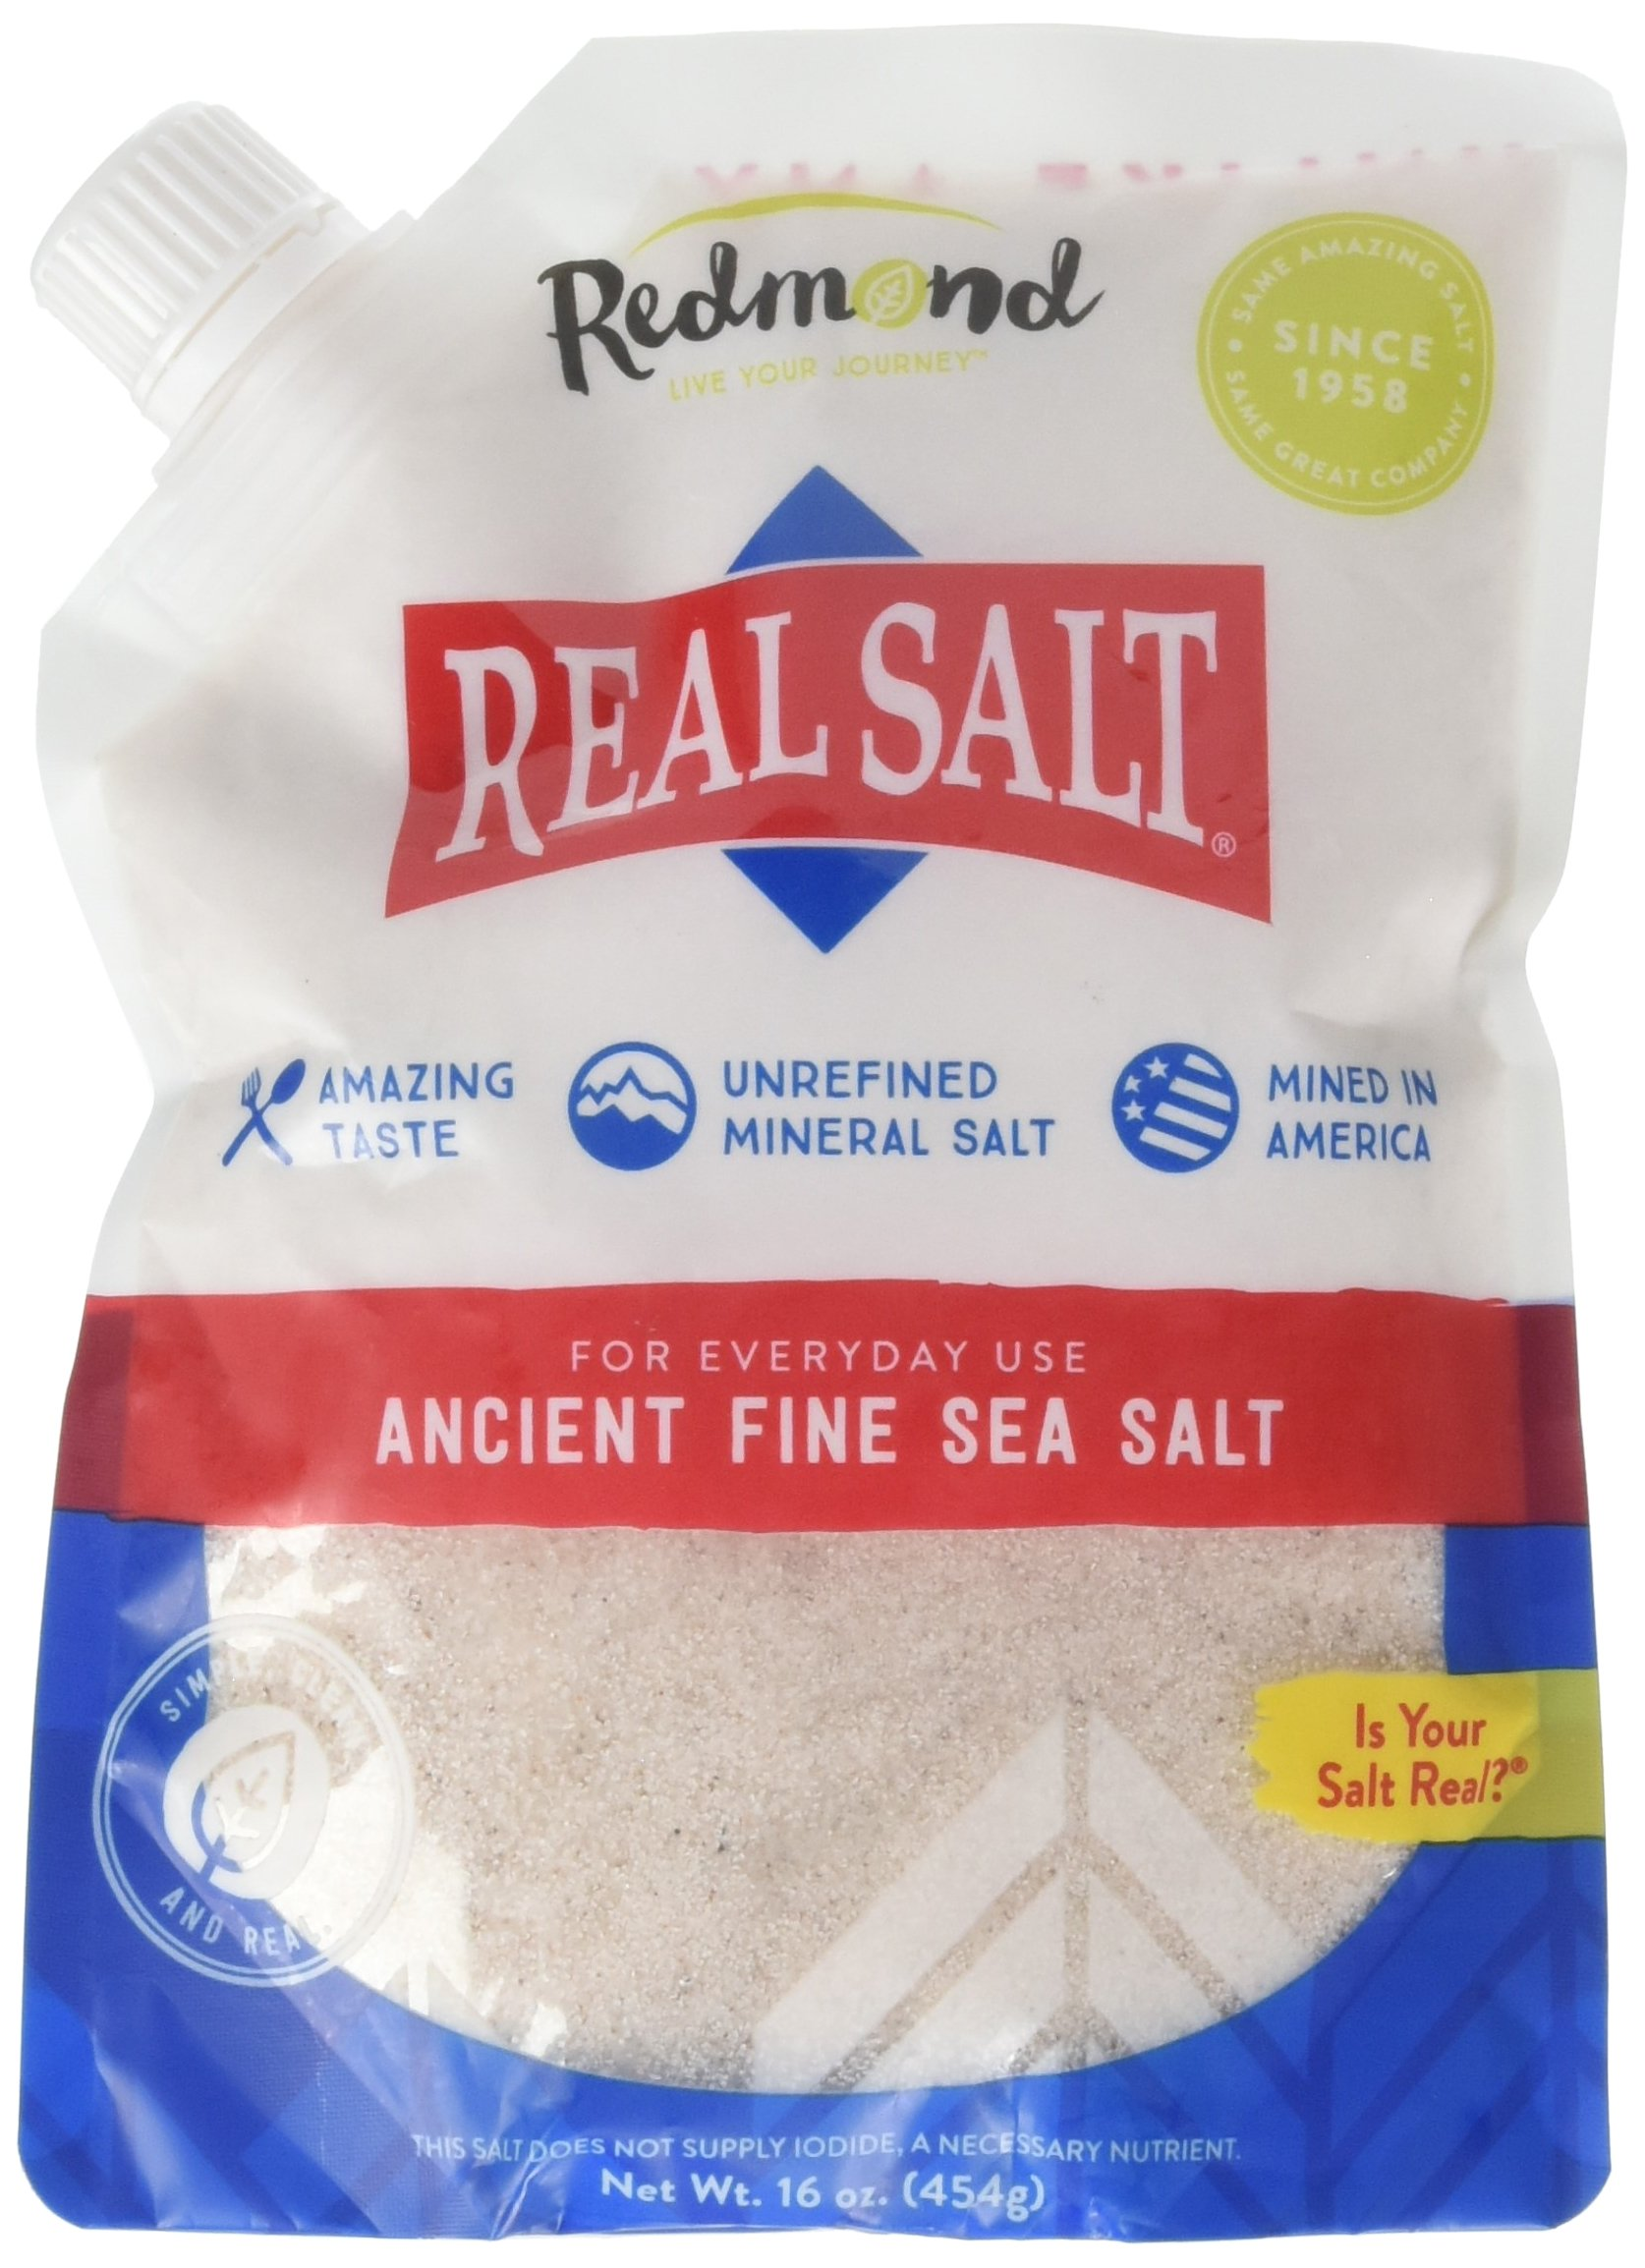 Redmond Real Salt - Ancient Fine Sea Salt, Unrefined Mineral Salt, 16 Ounce Pouch (1 Pack)